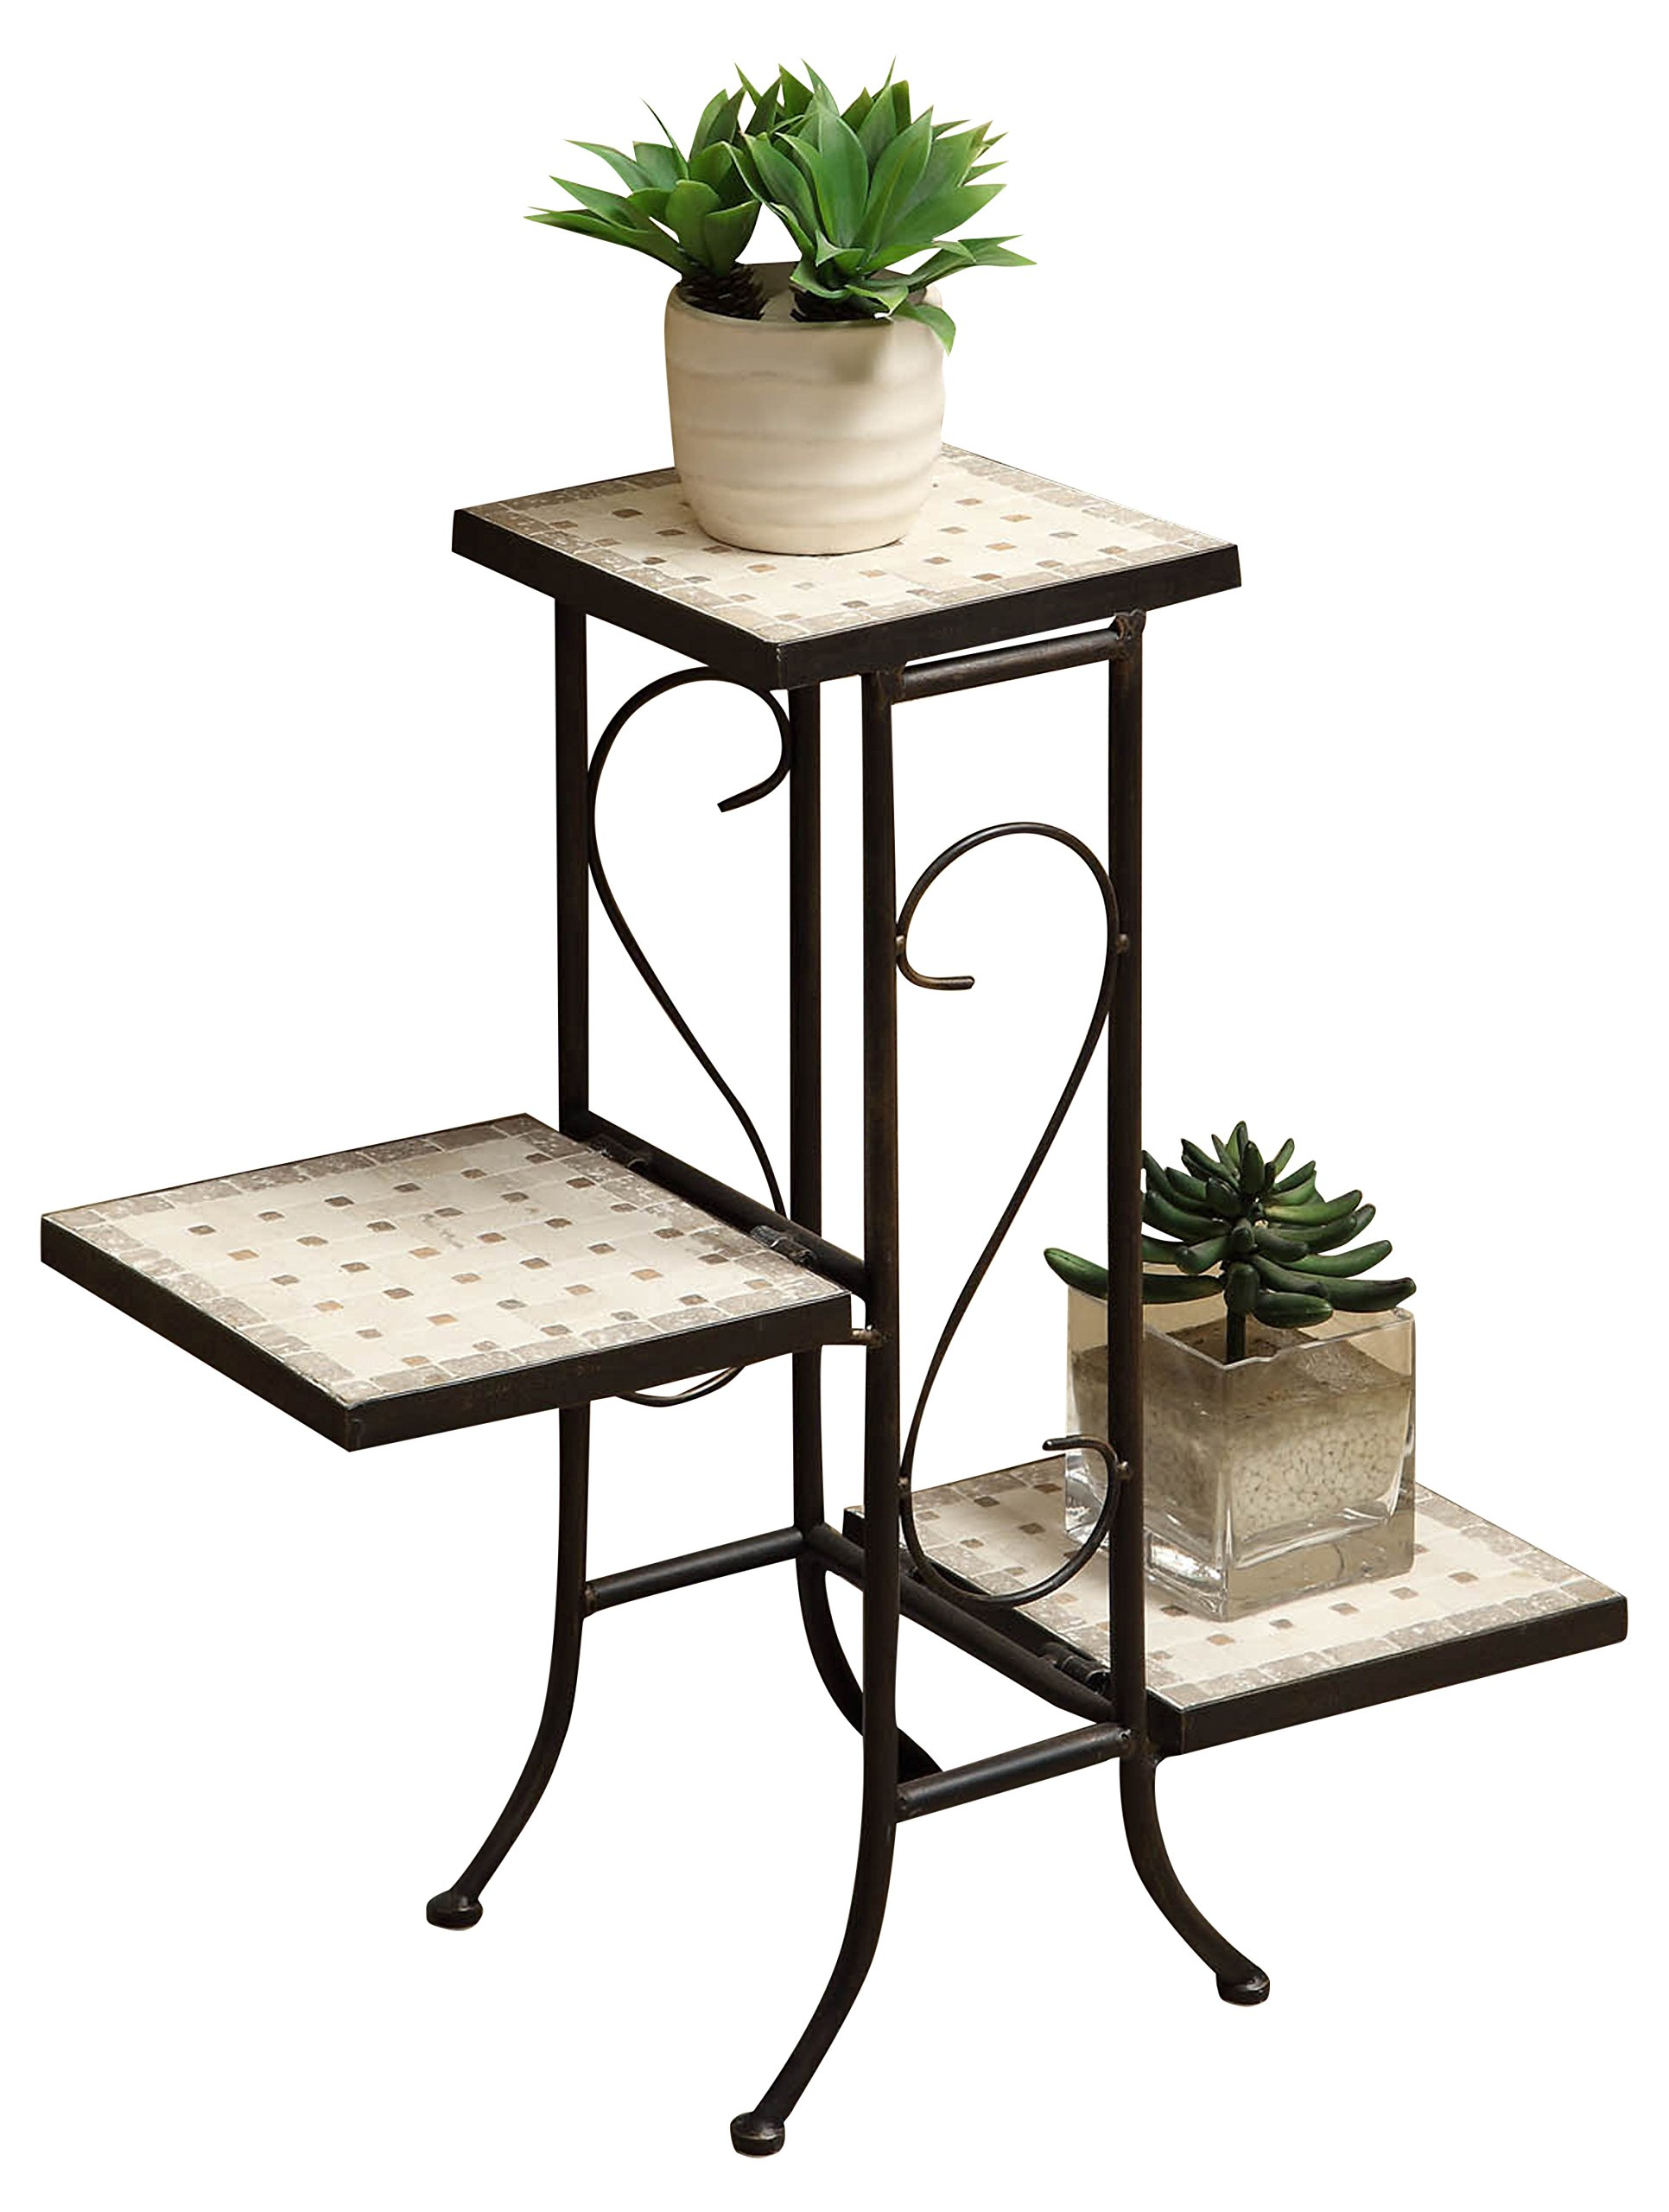 4D Concepts 3 Tier Travertine Plant Stand by 4D Concepts